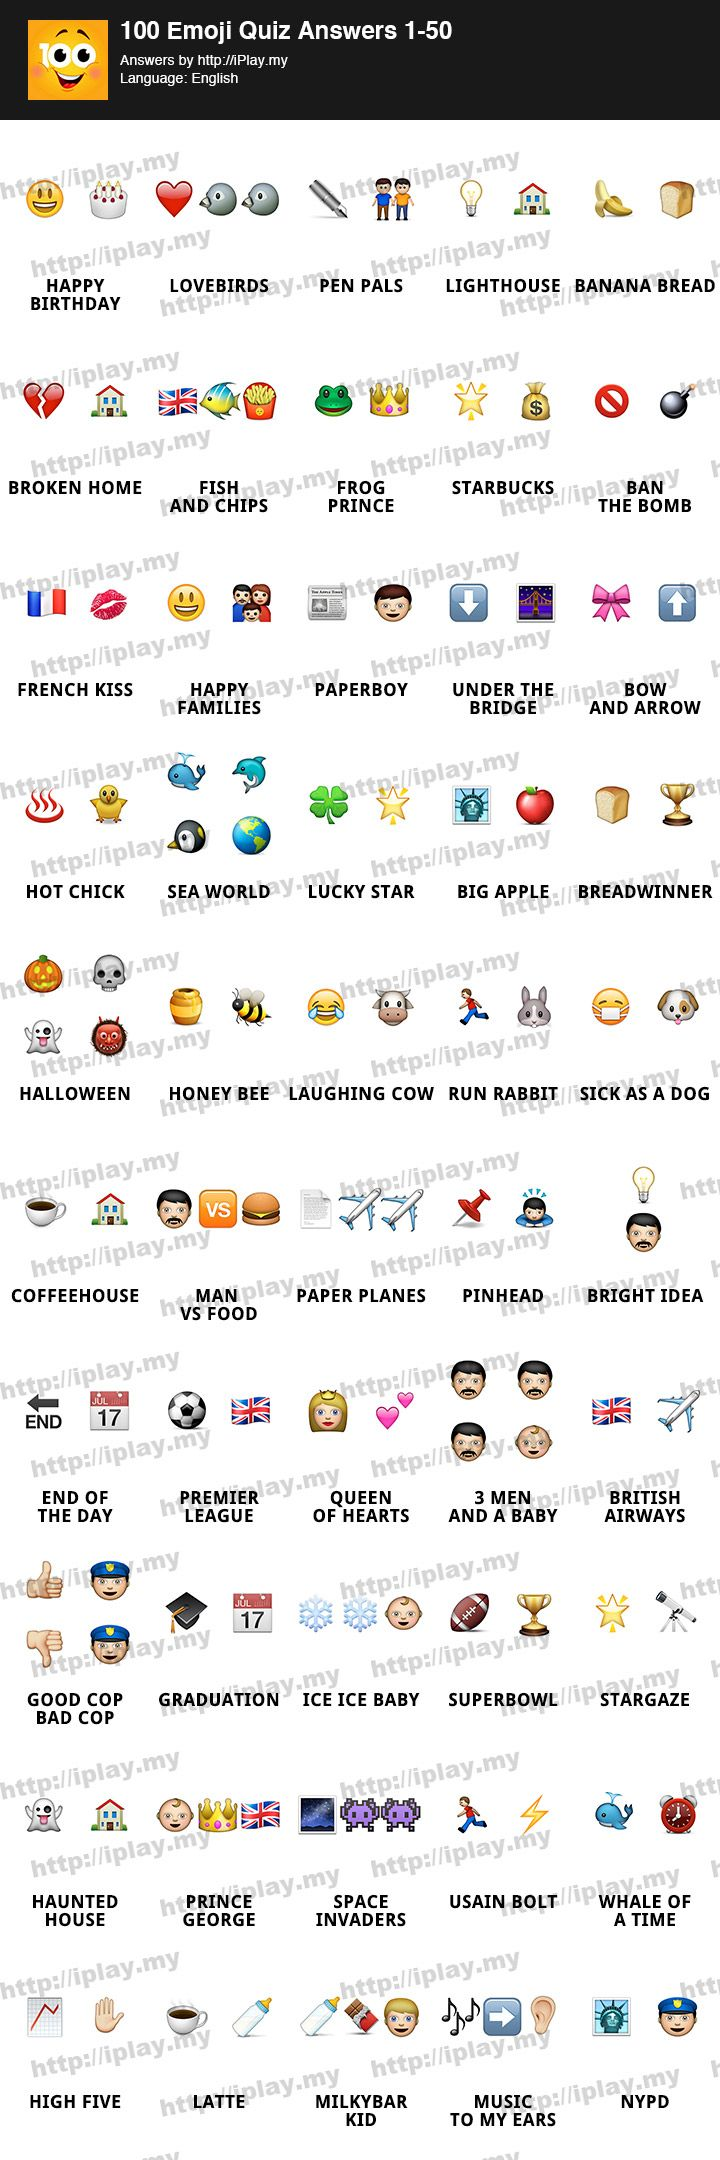 100 Emoji Quiz Answers With Reveal Pics Emoji Quiz Emoji Texts 100 Emoji